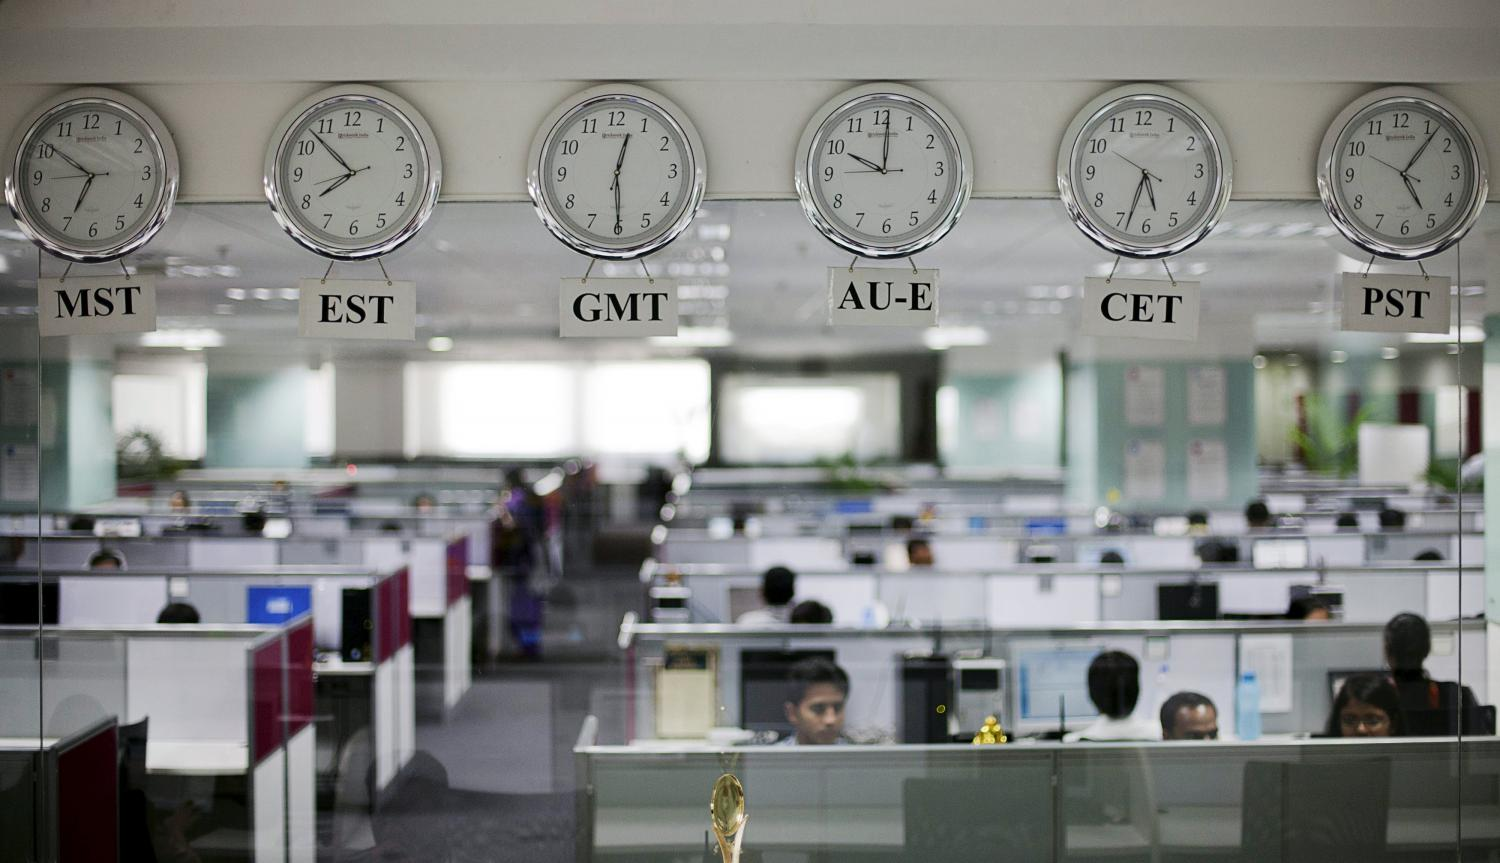 Workers are pictured beneath clocks displaying time zones in various parts of the world at an outsourcing centre in Bangalore in this file photo. (Reuters photo)